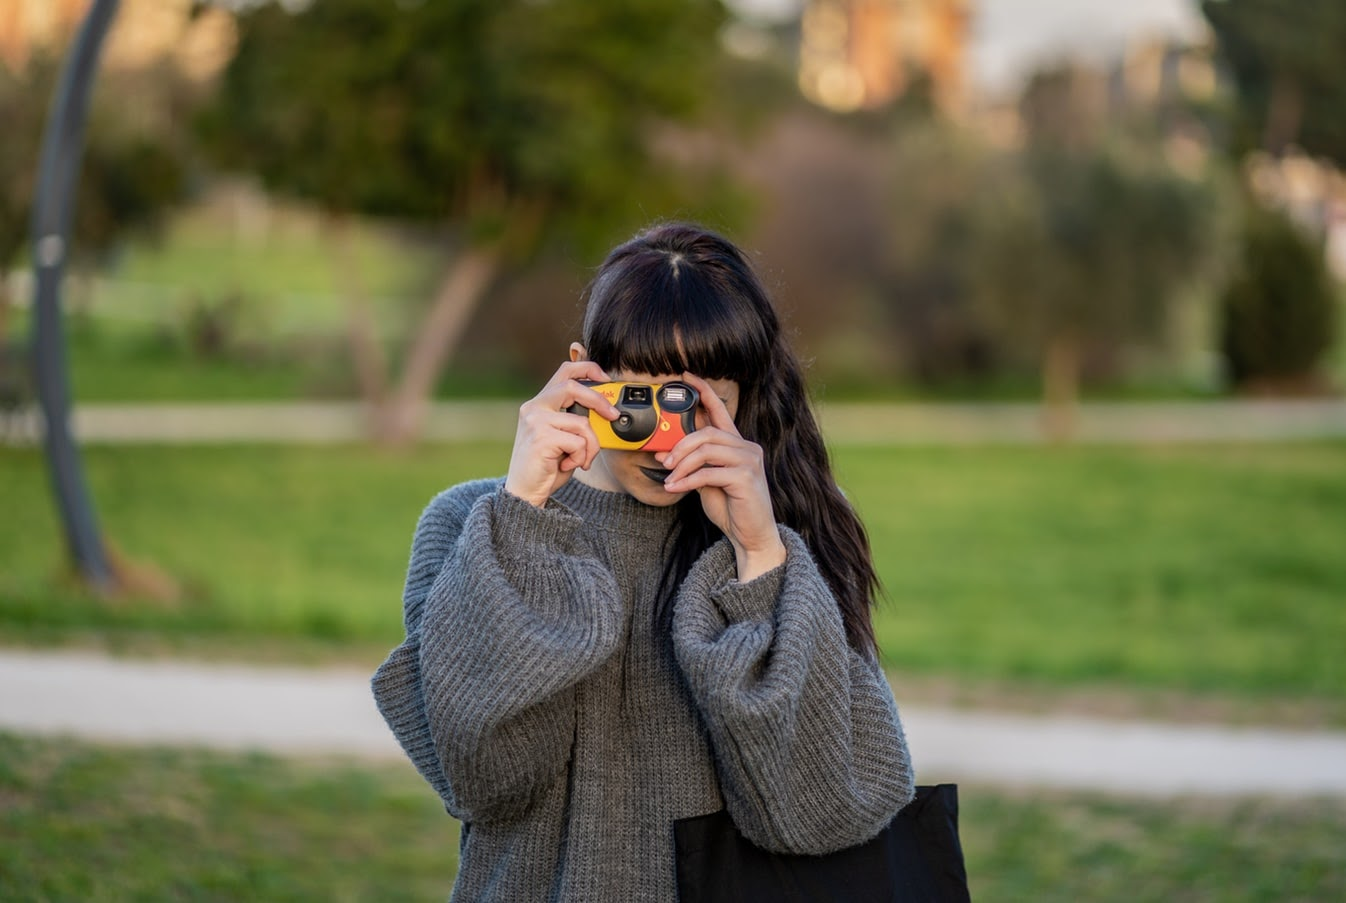 A woman taking a photo with a disposable camera.